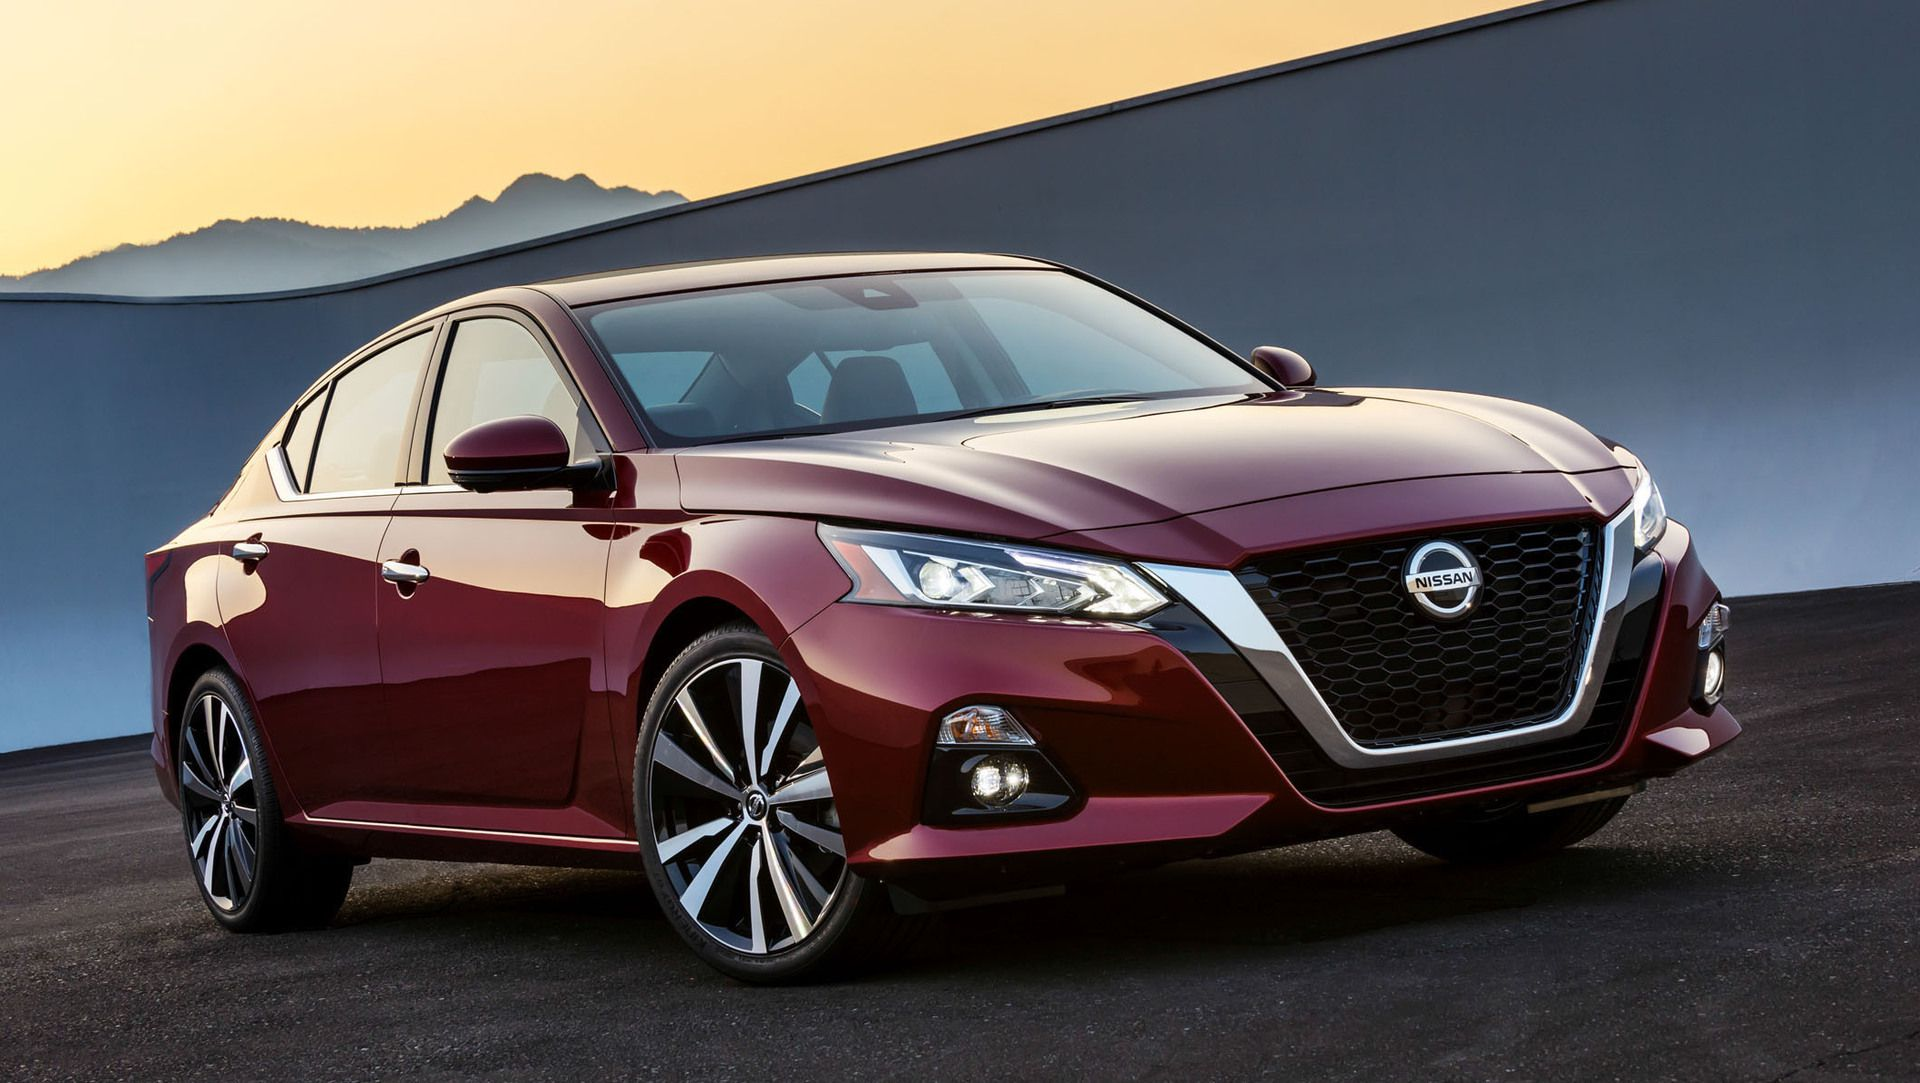 2019 Nissan Altima Vs Honda Accord Vs Toyota Camry: How They Compare